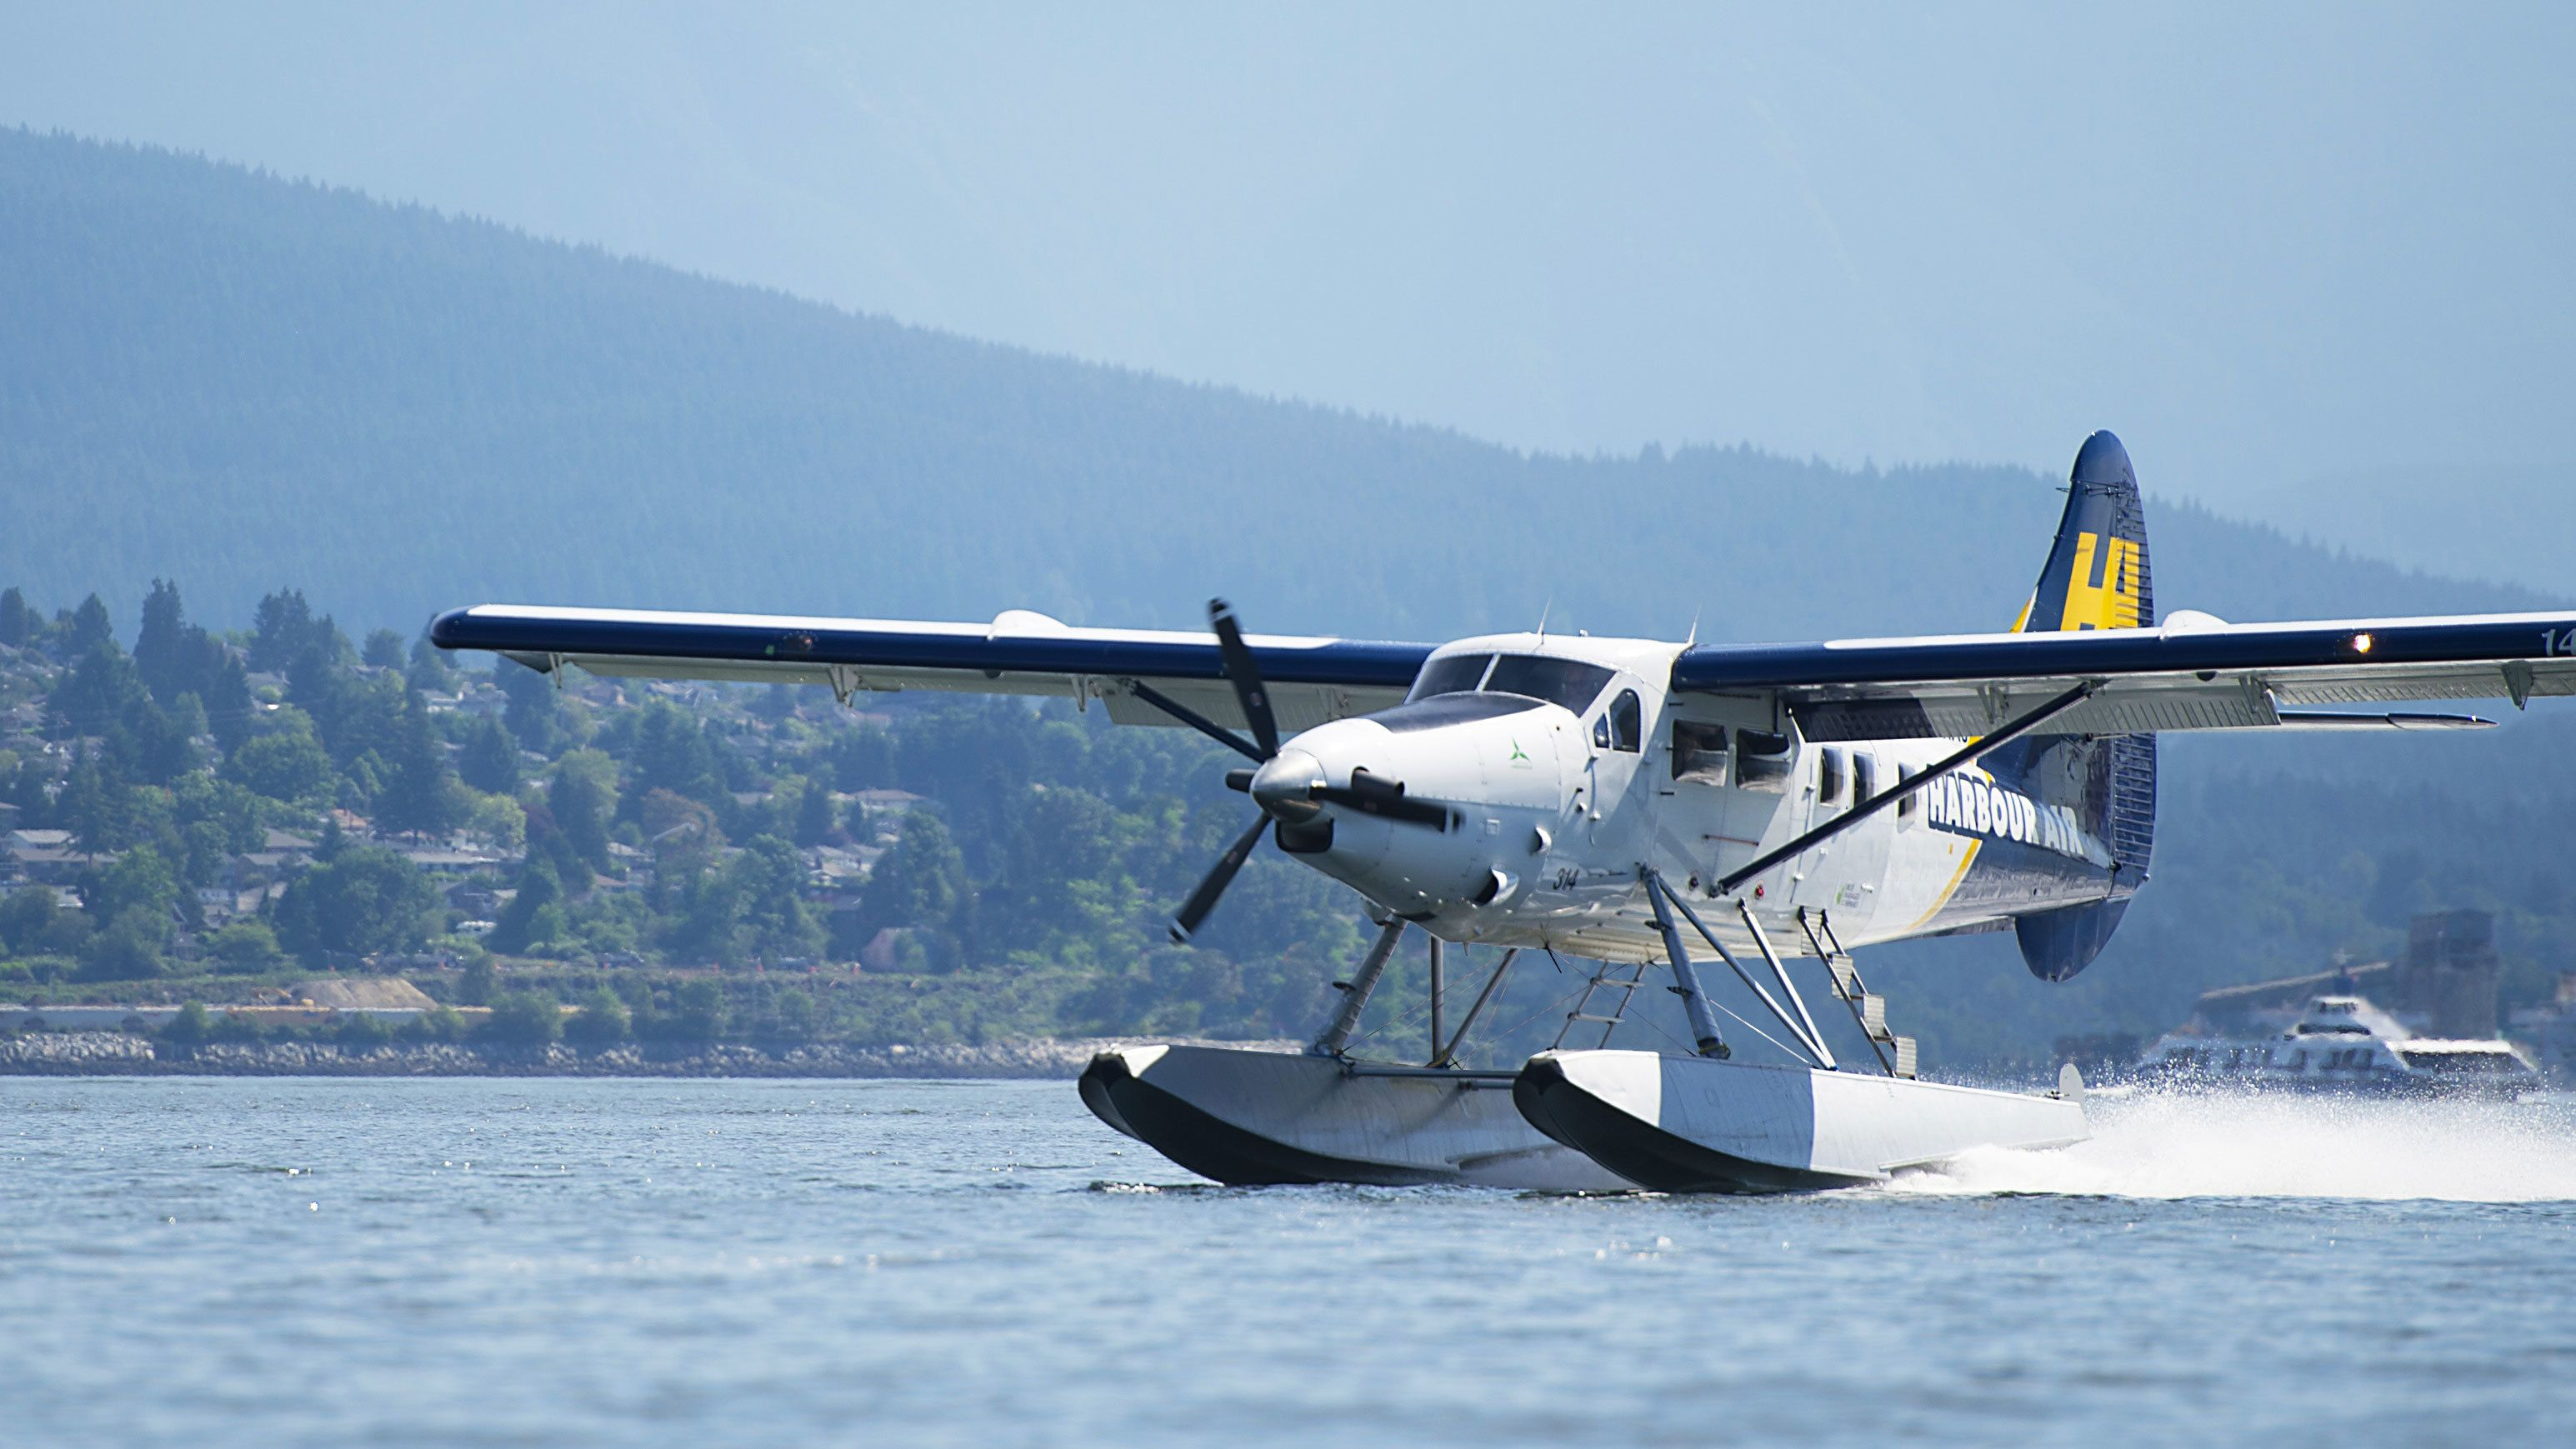 Plane landing on the water in Vancouver